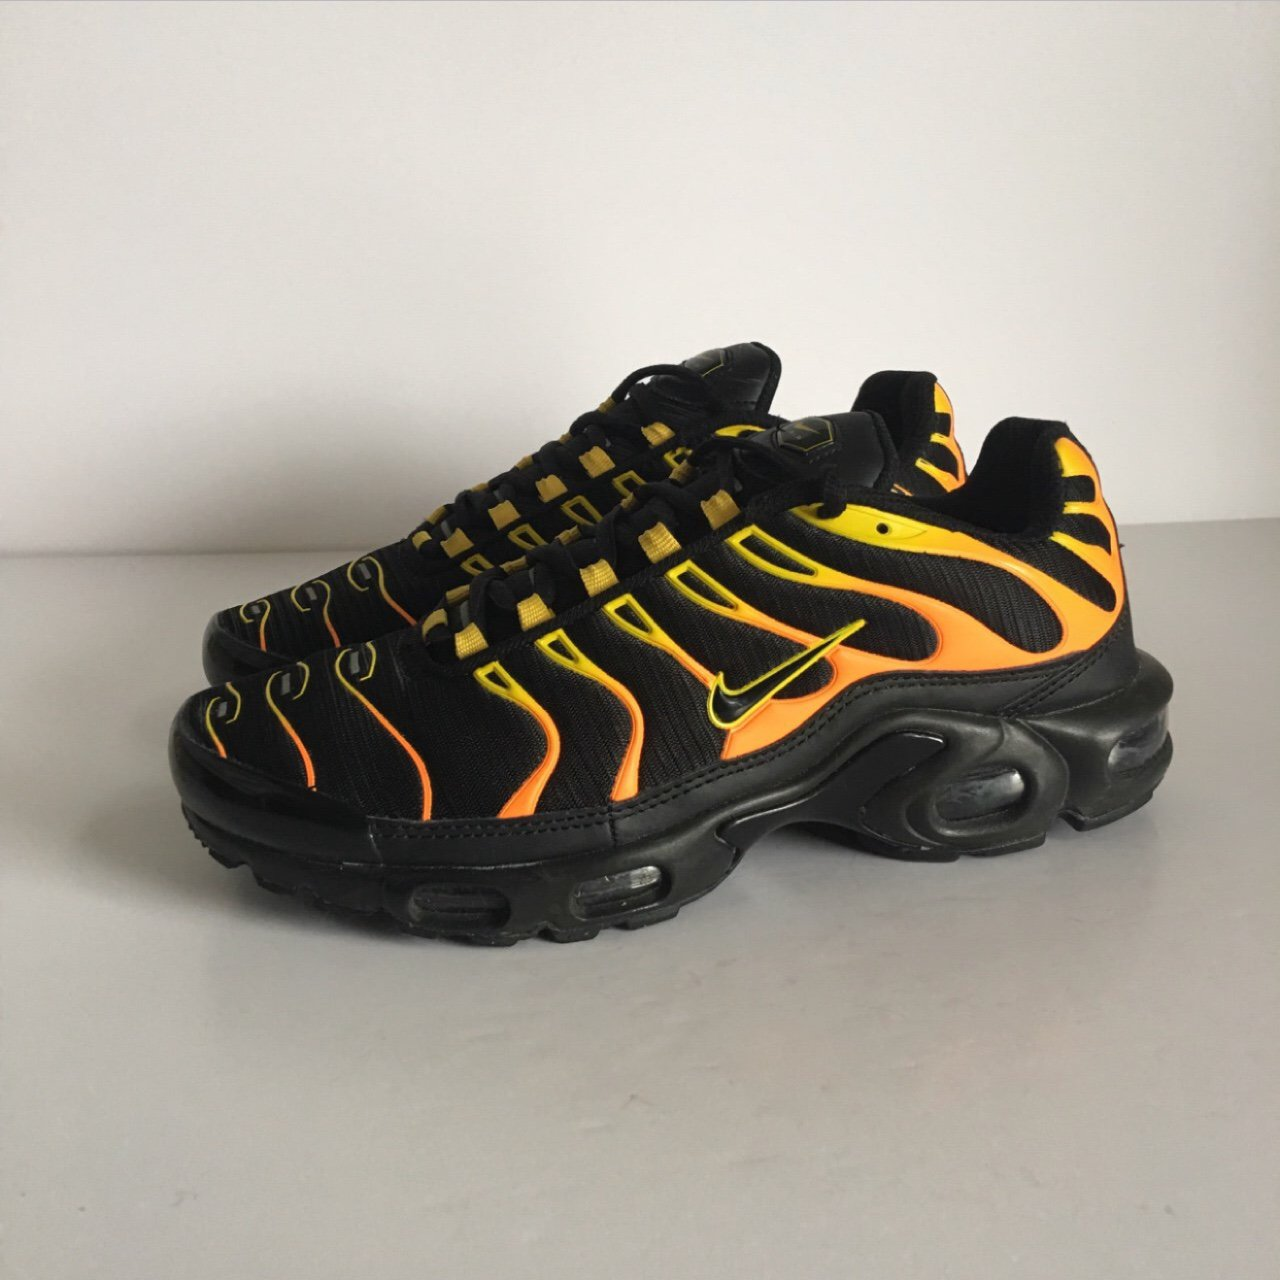 6ee30fffcb msg me offers Nike tns in black orange yellow colour way - 6 - Depop